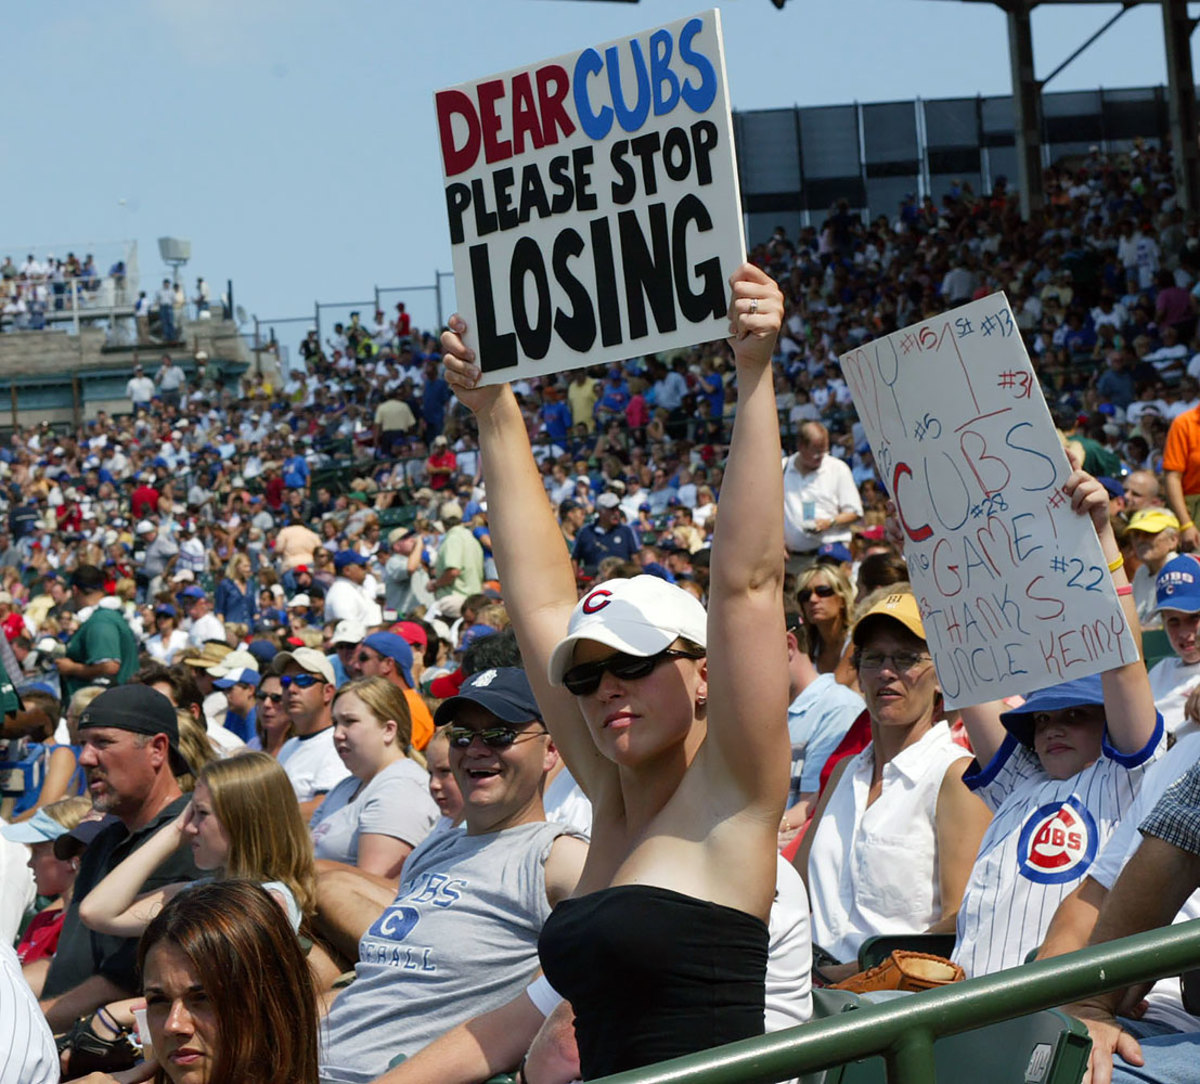 2005-Chicago-Cubs-fan-sign-GettyImages-110343493.jpg